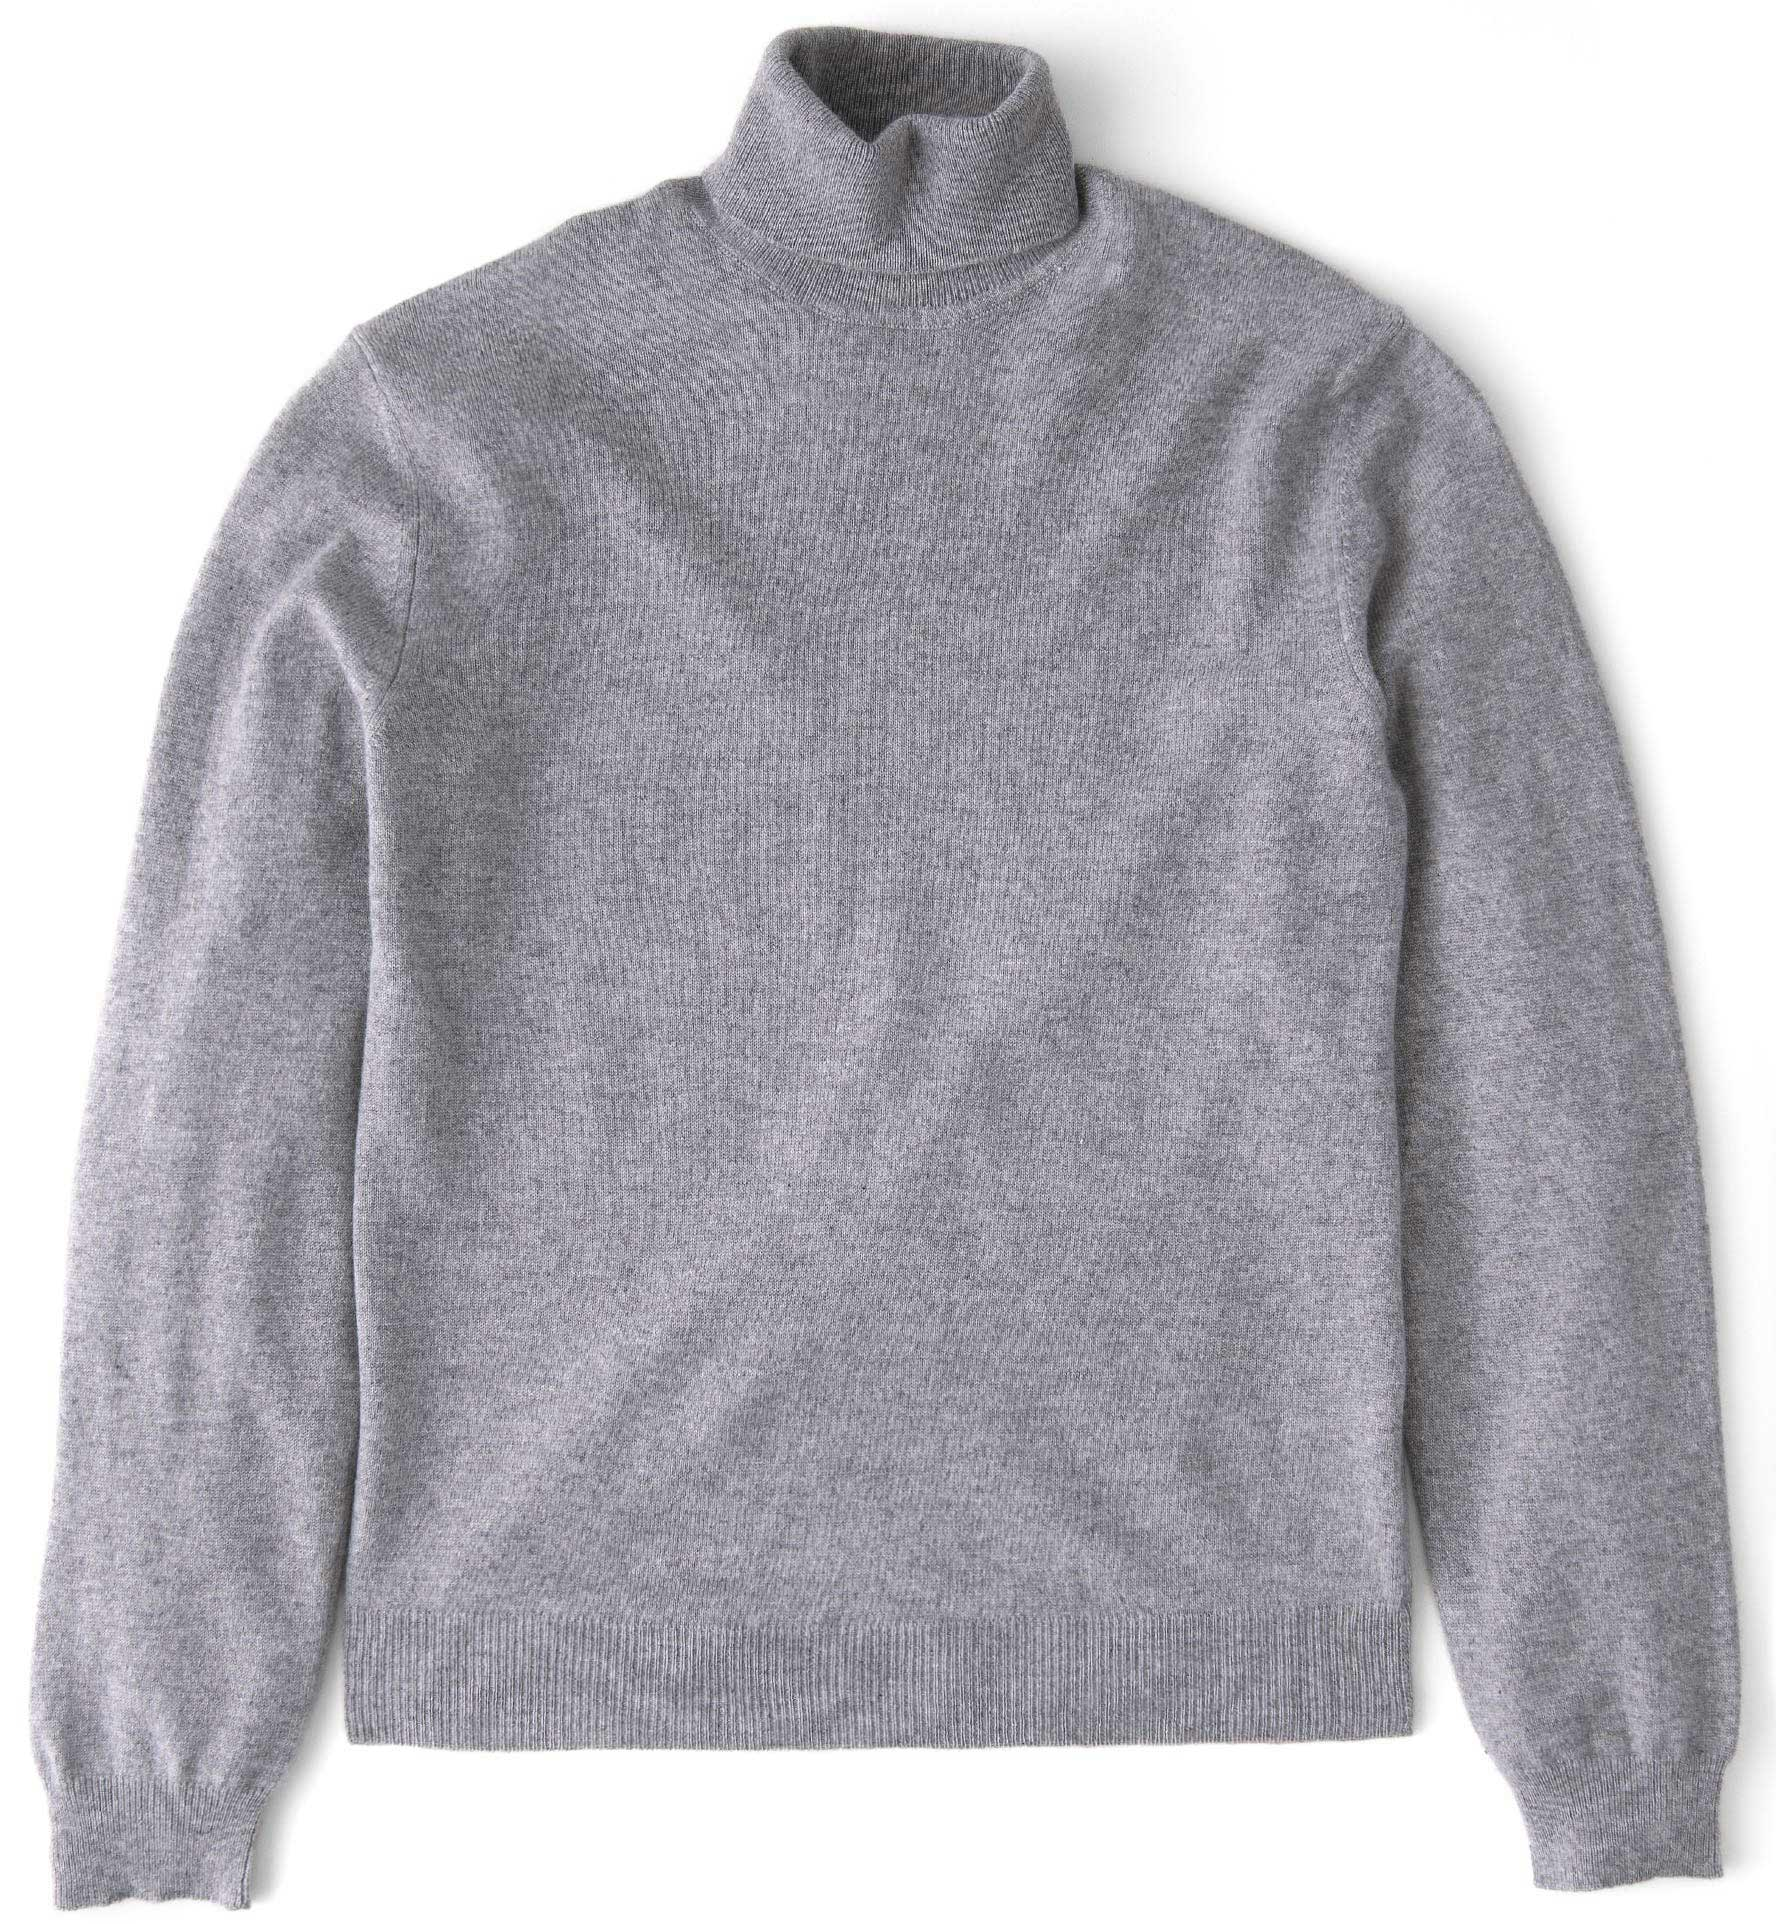 Zoom Image of Light Grey Cashmere Turtleneck Sweater